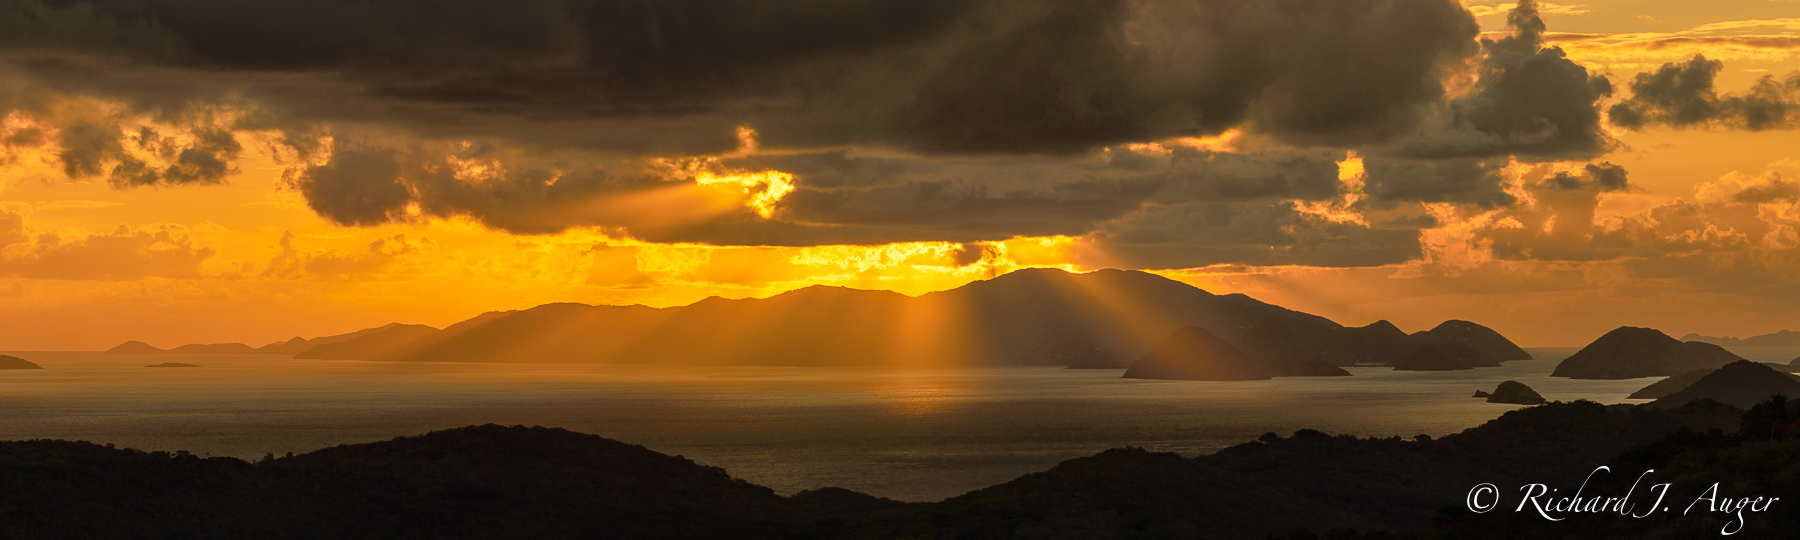 Magens Bay Overlook, St Thomas, US Virgin Islands, Dramatic, Sunrise, Orange, Mountains, Ocean